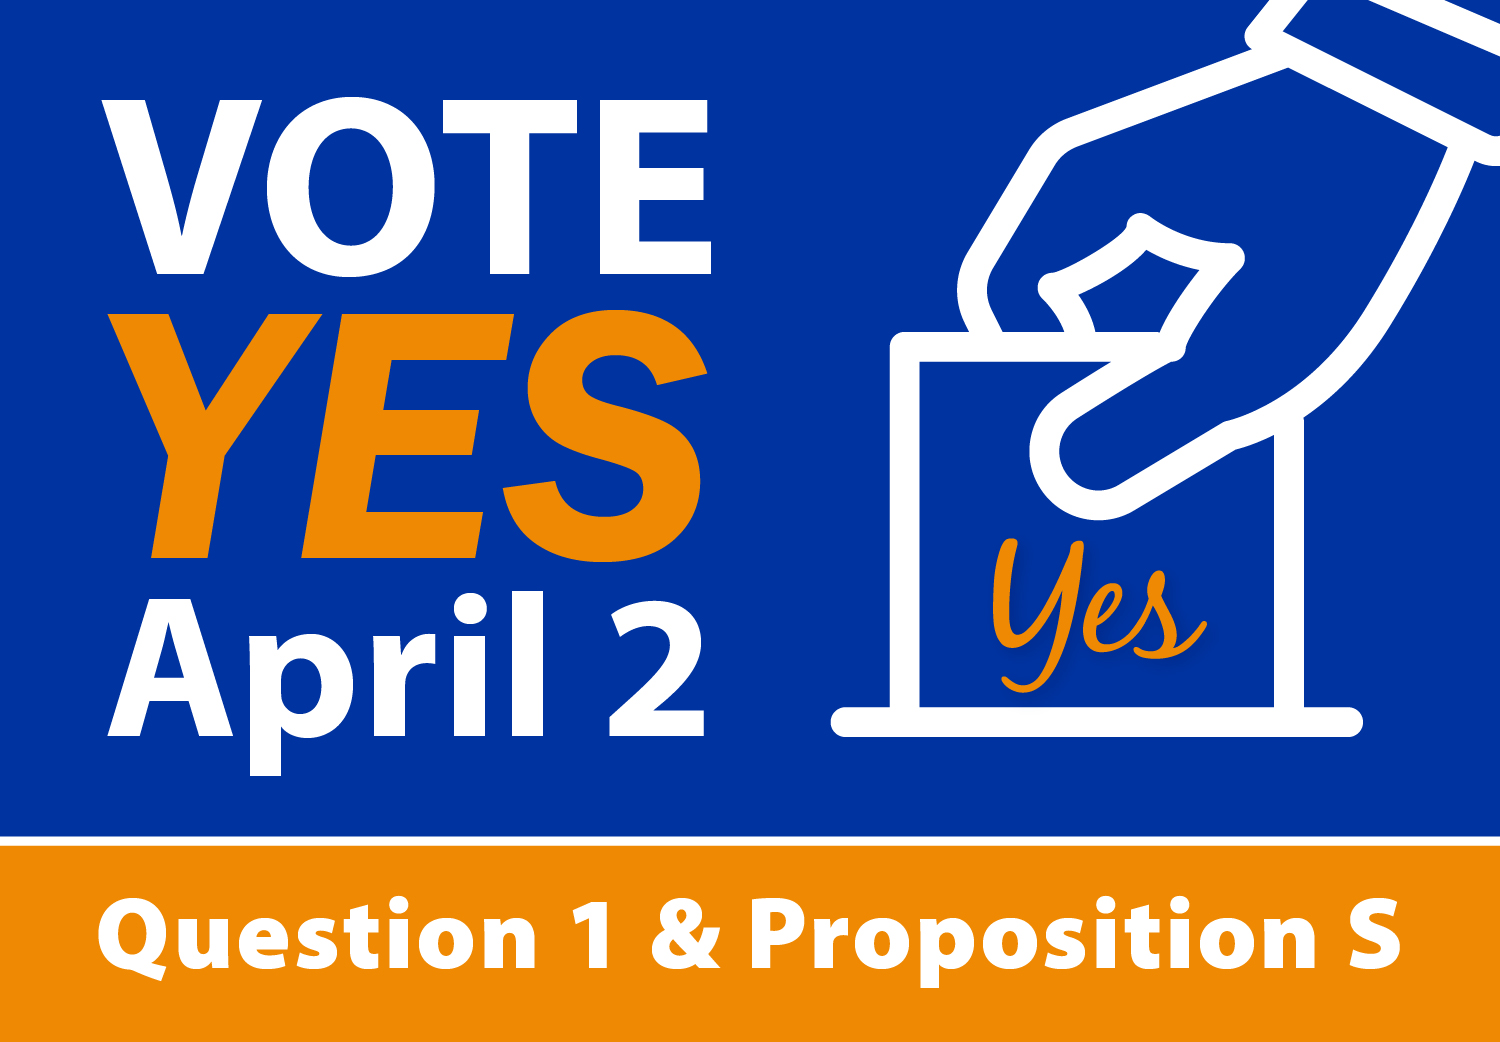 vote_yes_YBA_image-02